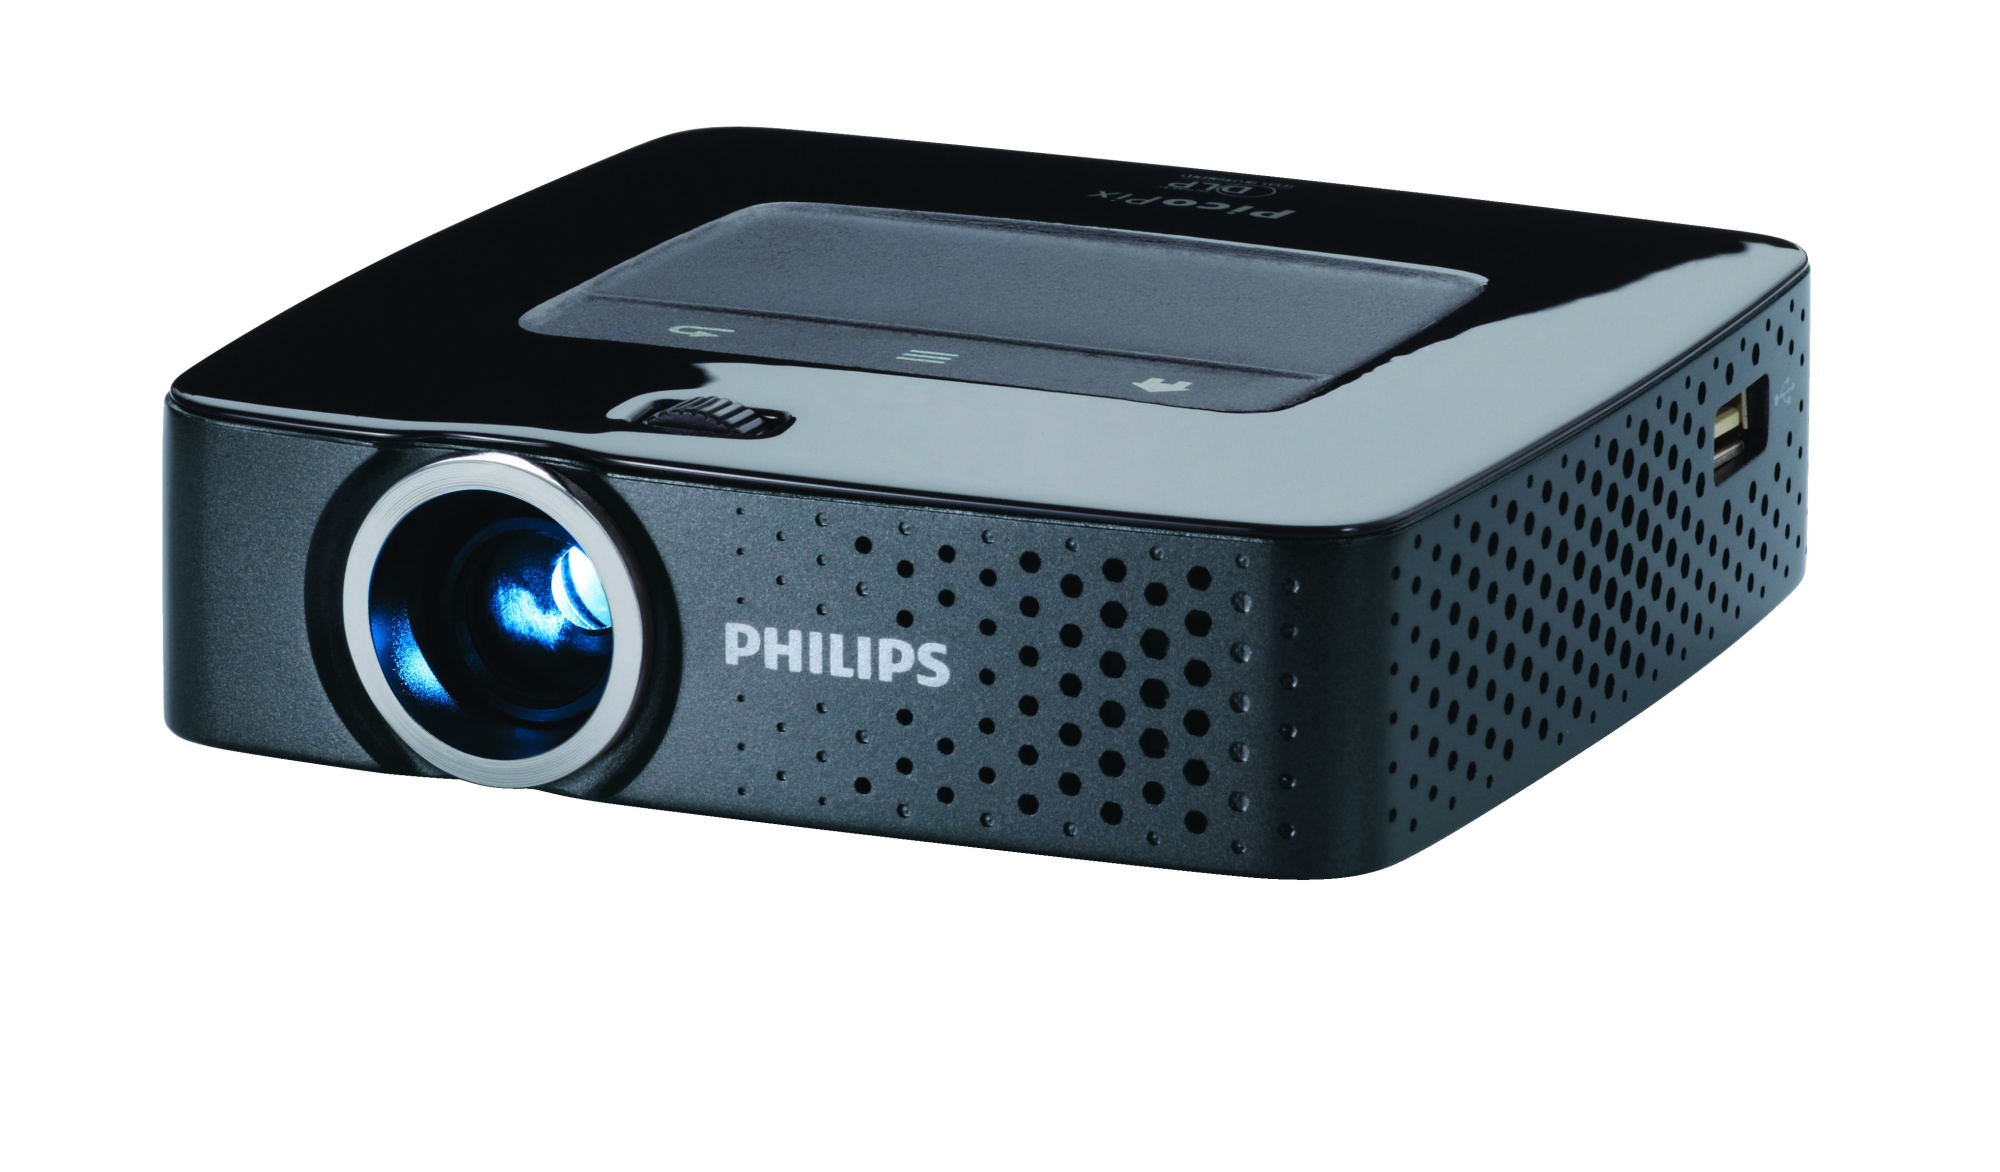 Philips picopix ppx3614 dlp led 854 x 480 portable projector for Dlp portable projector